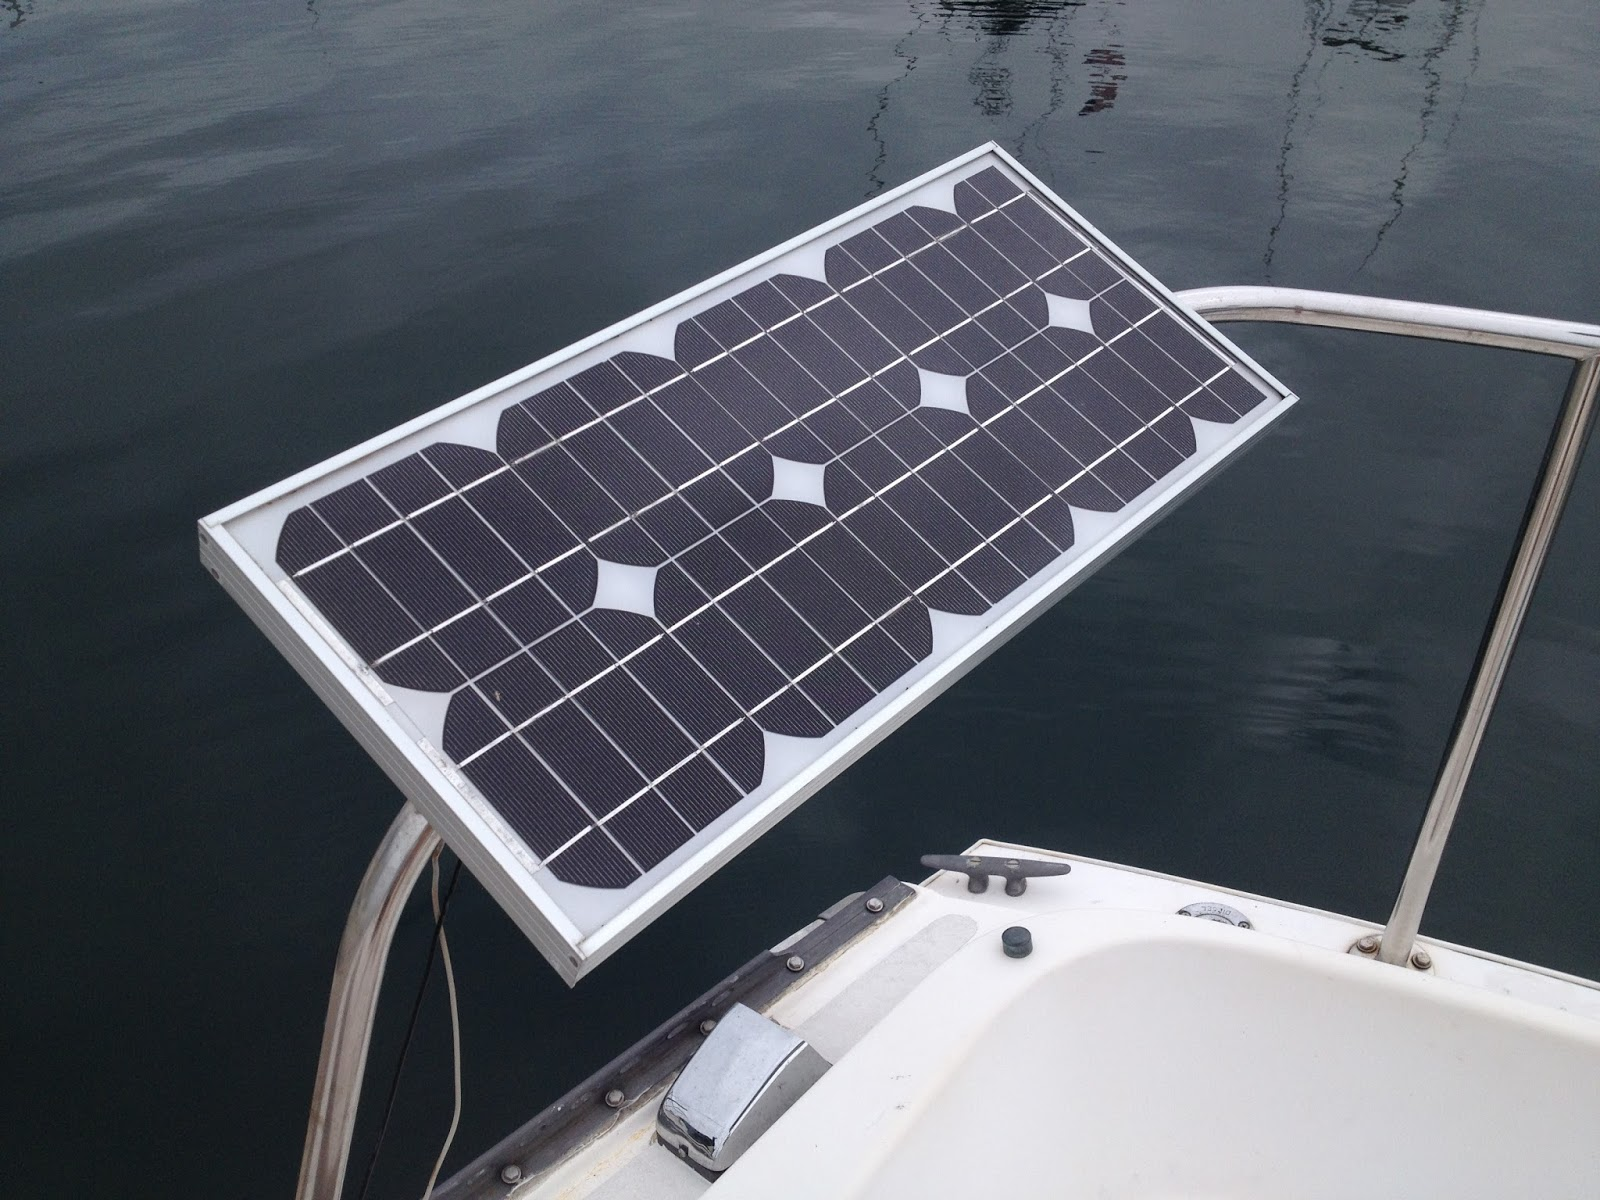 captain curran s sailing blog how much solar power do i need for my solar panels as well marine engines boat wiring help in addition solar [ 1600 x 1200 Pixel ]